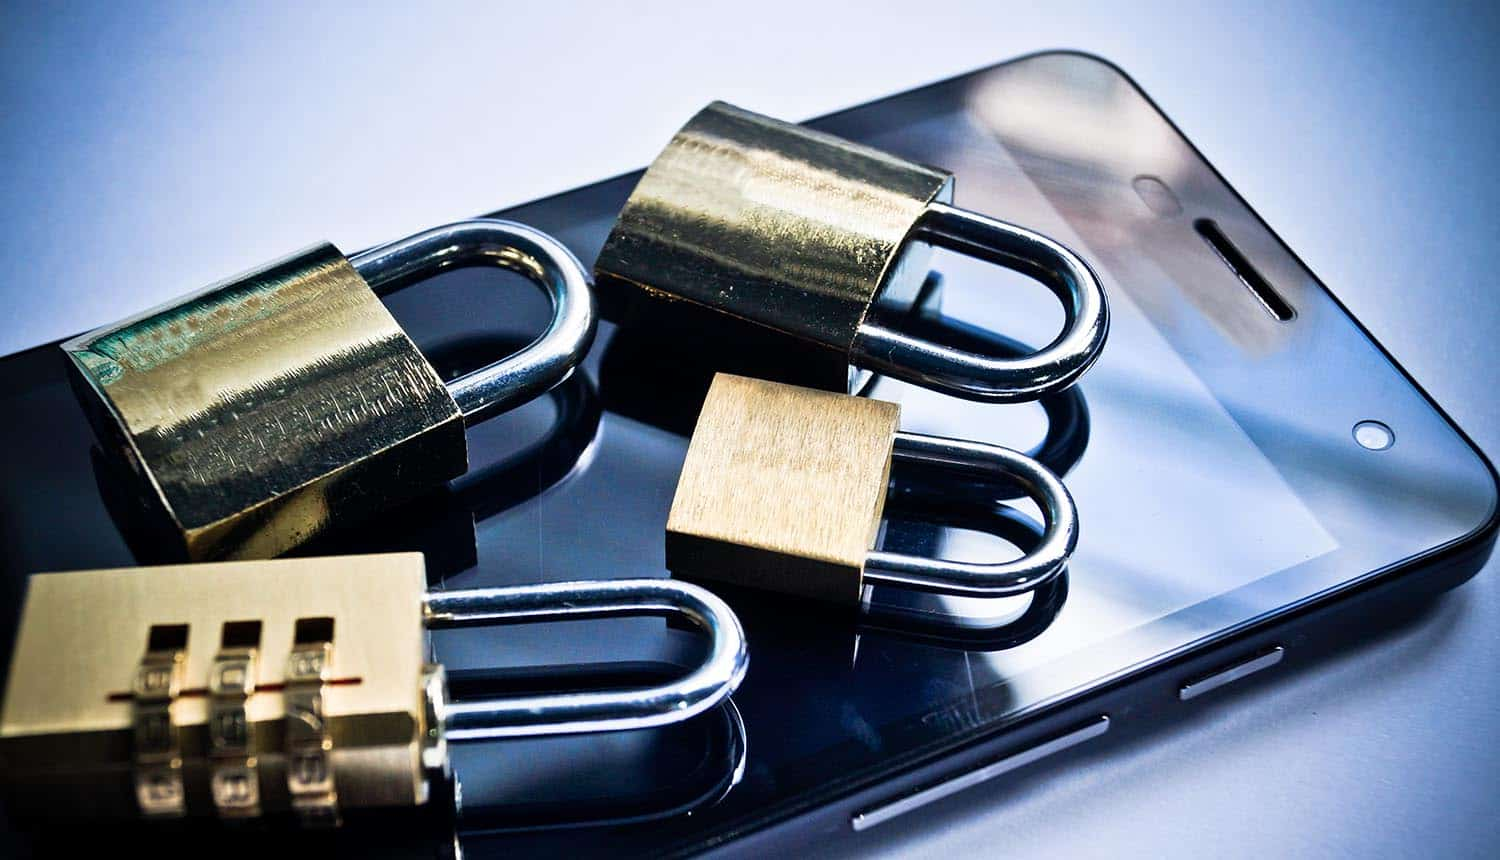 Metal security locks on a smartphone showing mobile security during pandemic